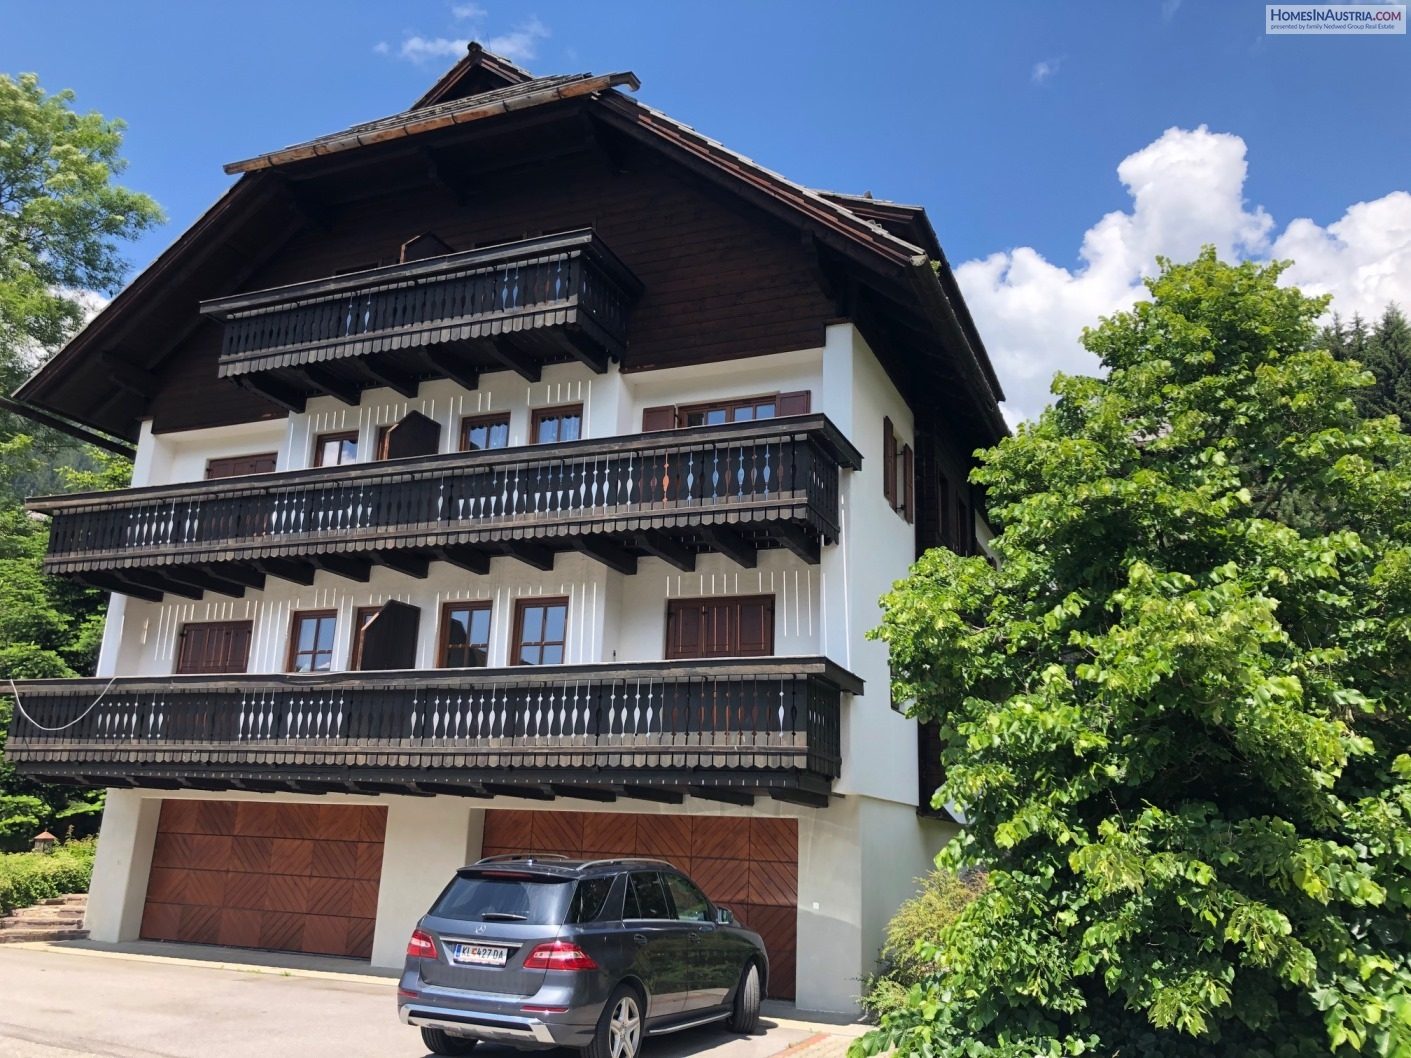 Bad Kleinkirchheim, Carinthia, Apartment (RIBO) 2 Bedrooms, 2 Baths, 2 Balconies